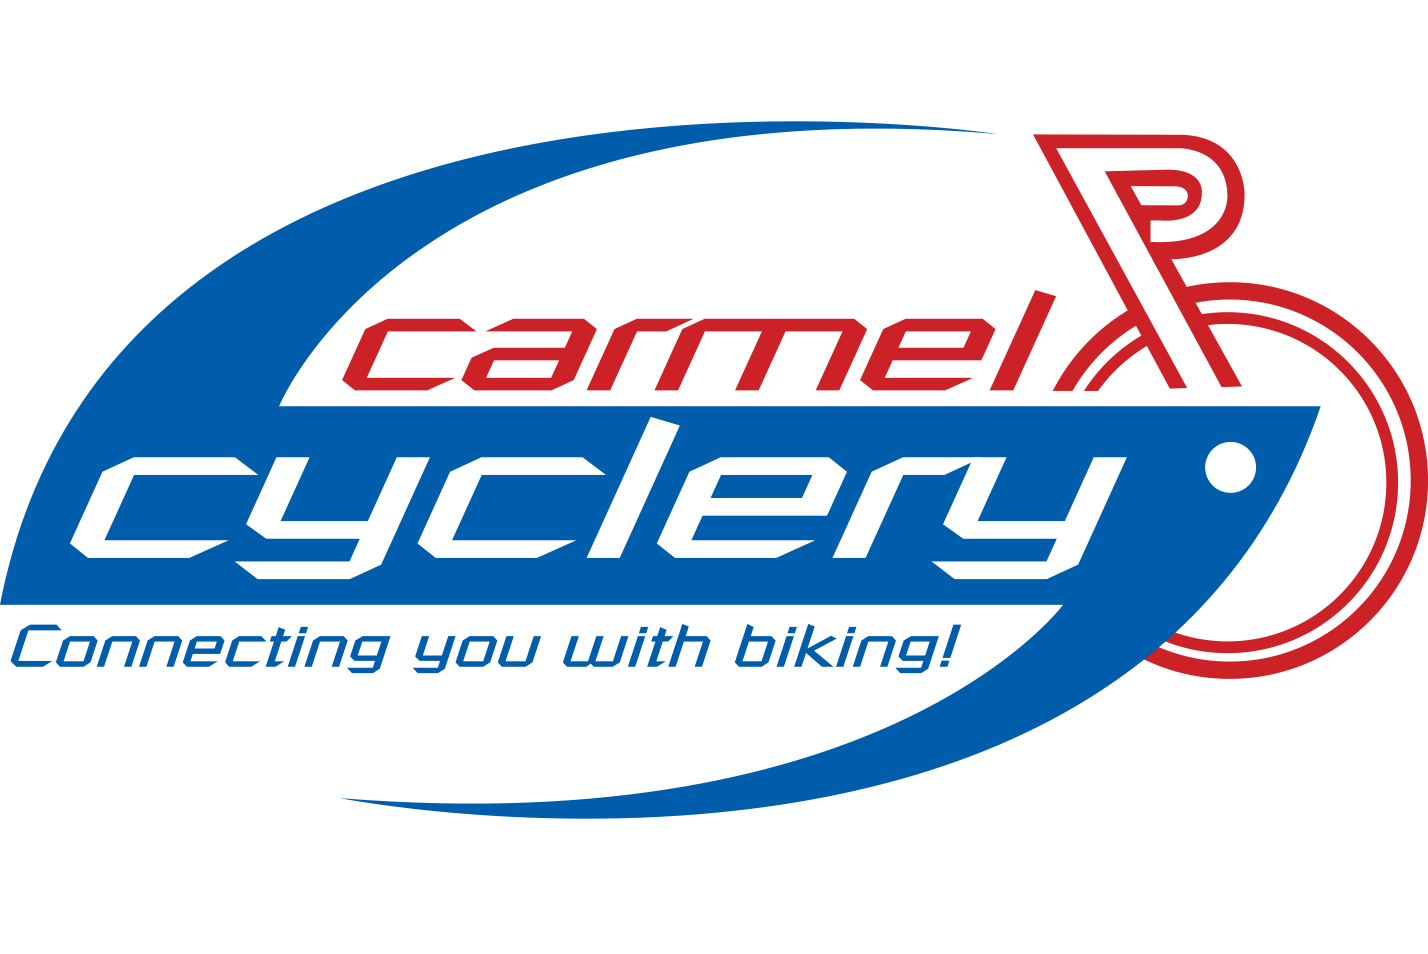 The Carmel Cyclery